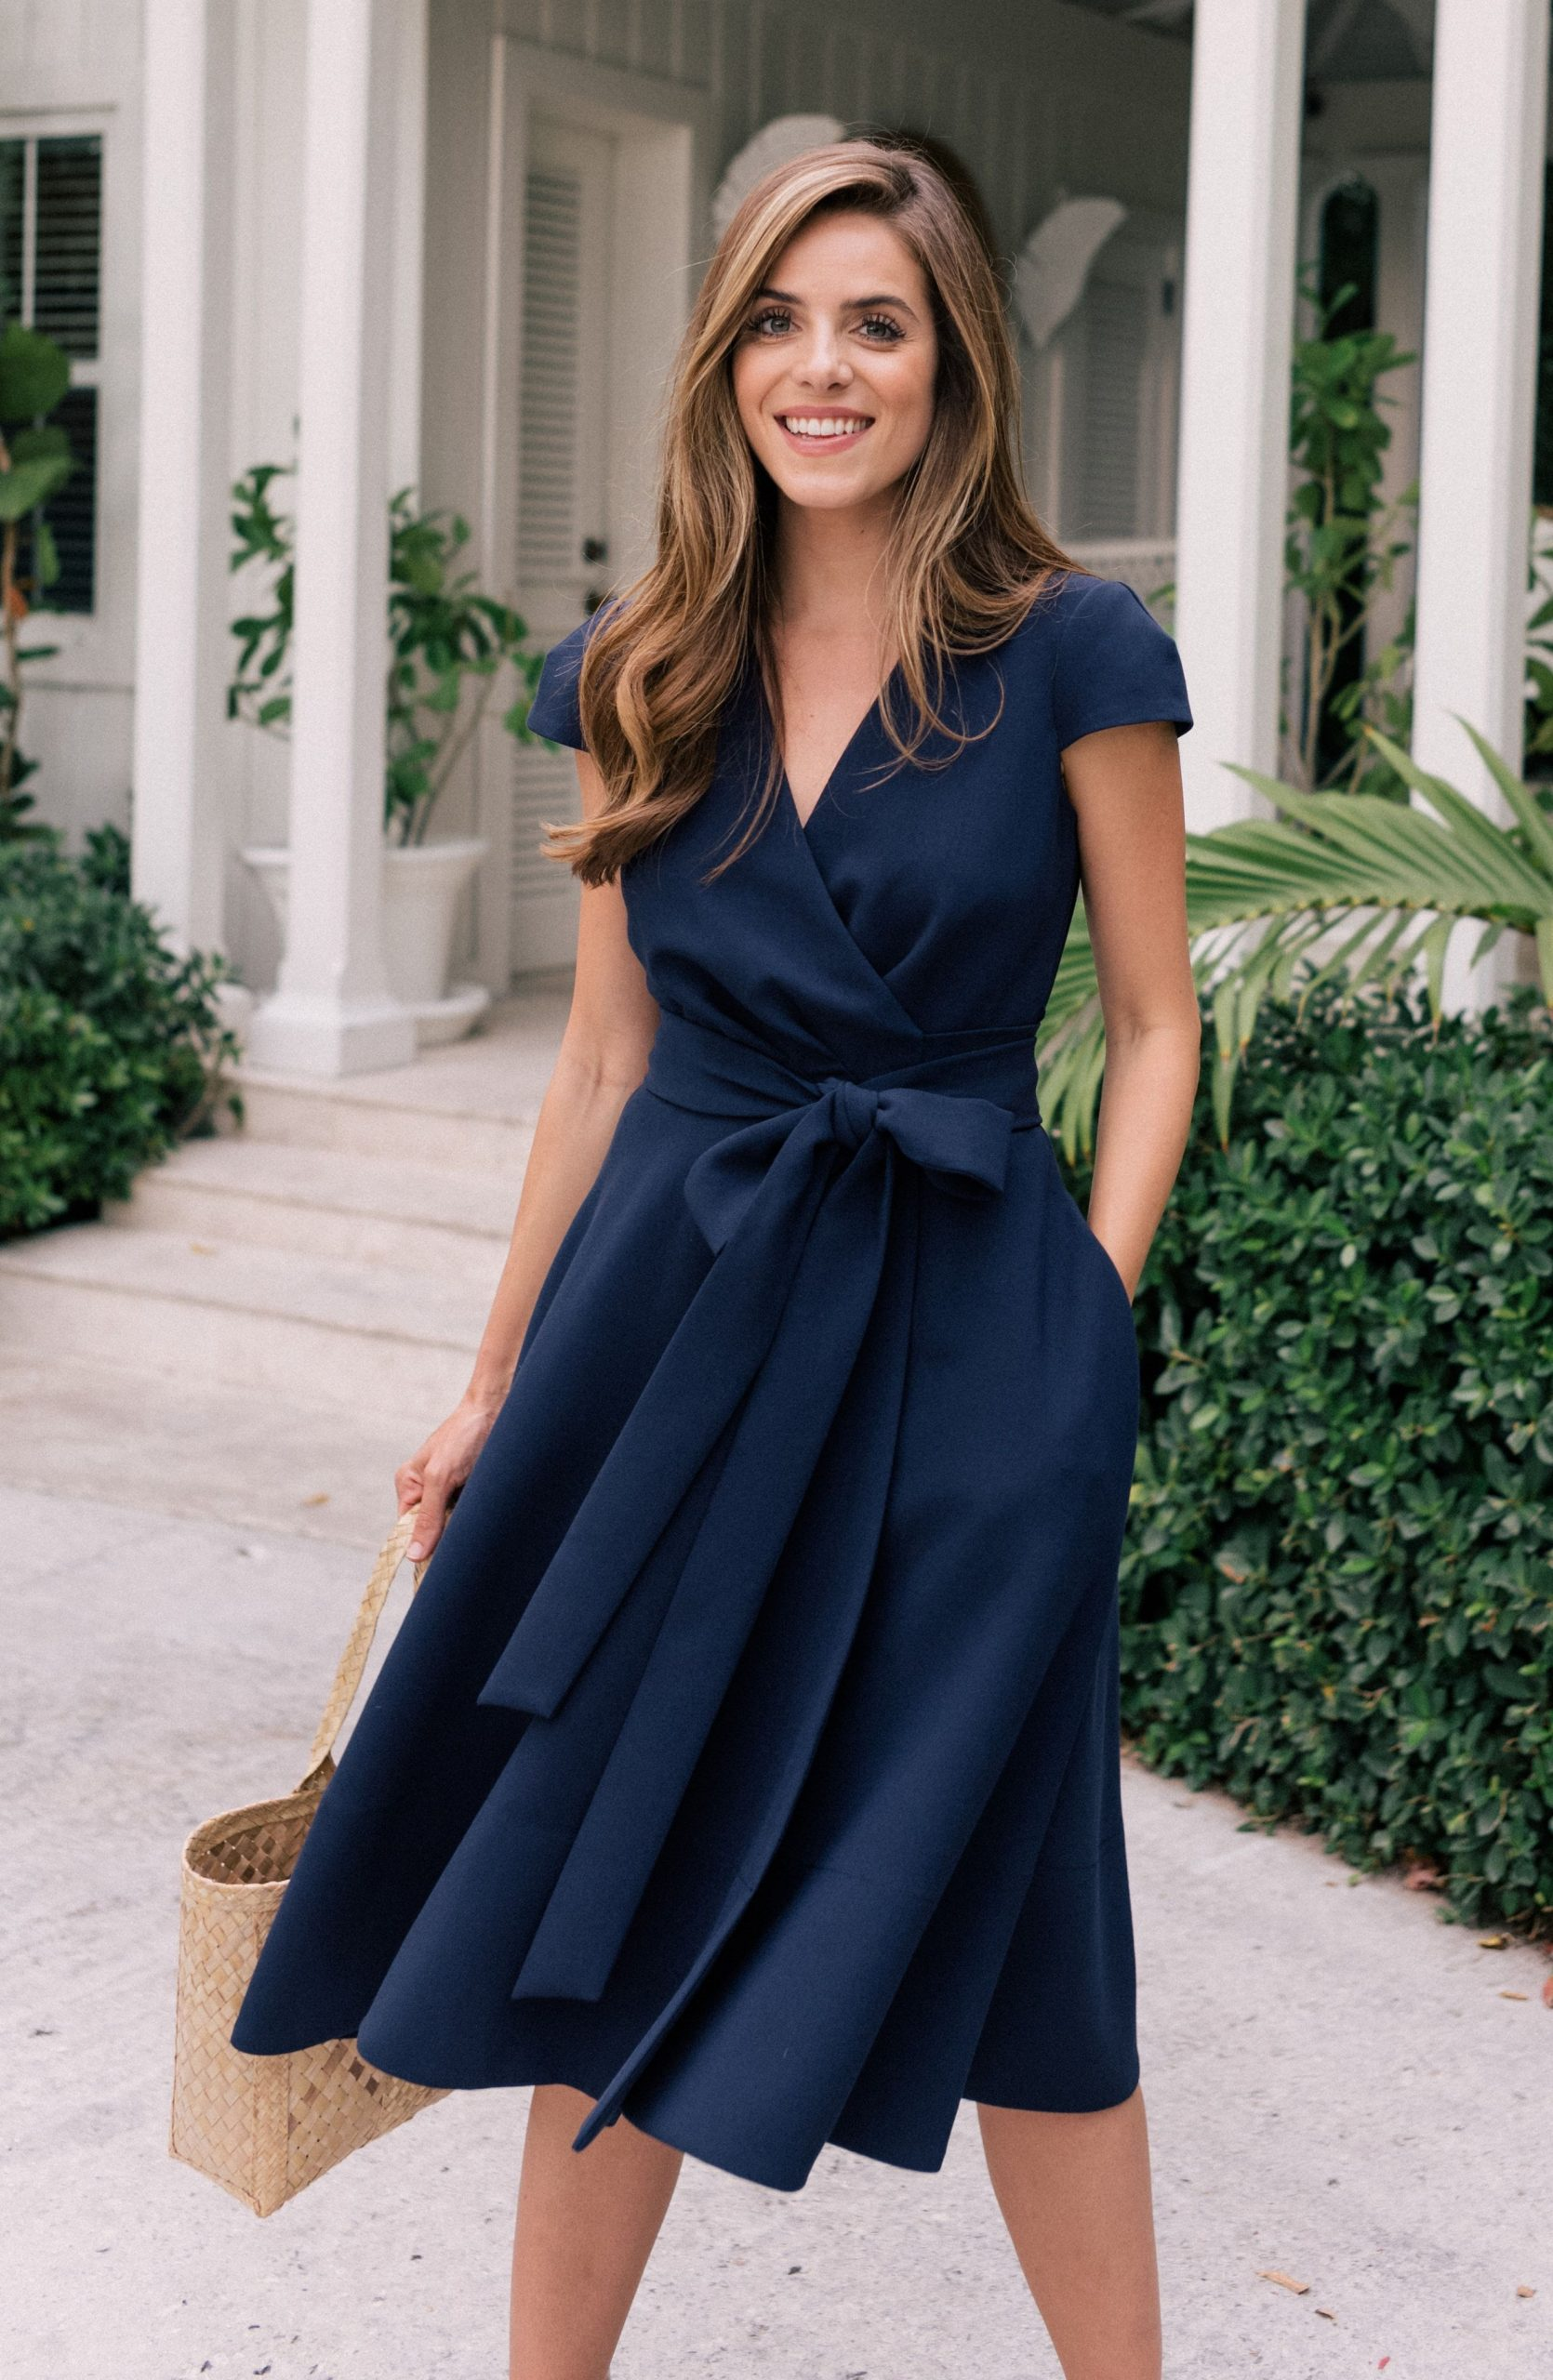 Navy Wrap Dress Outfit Ideas